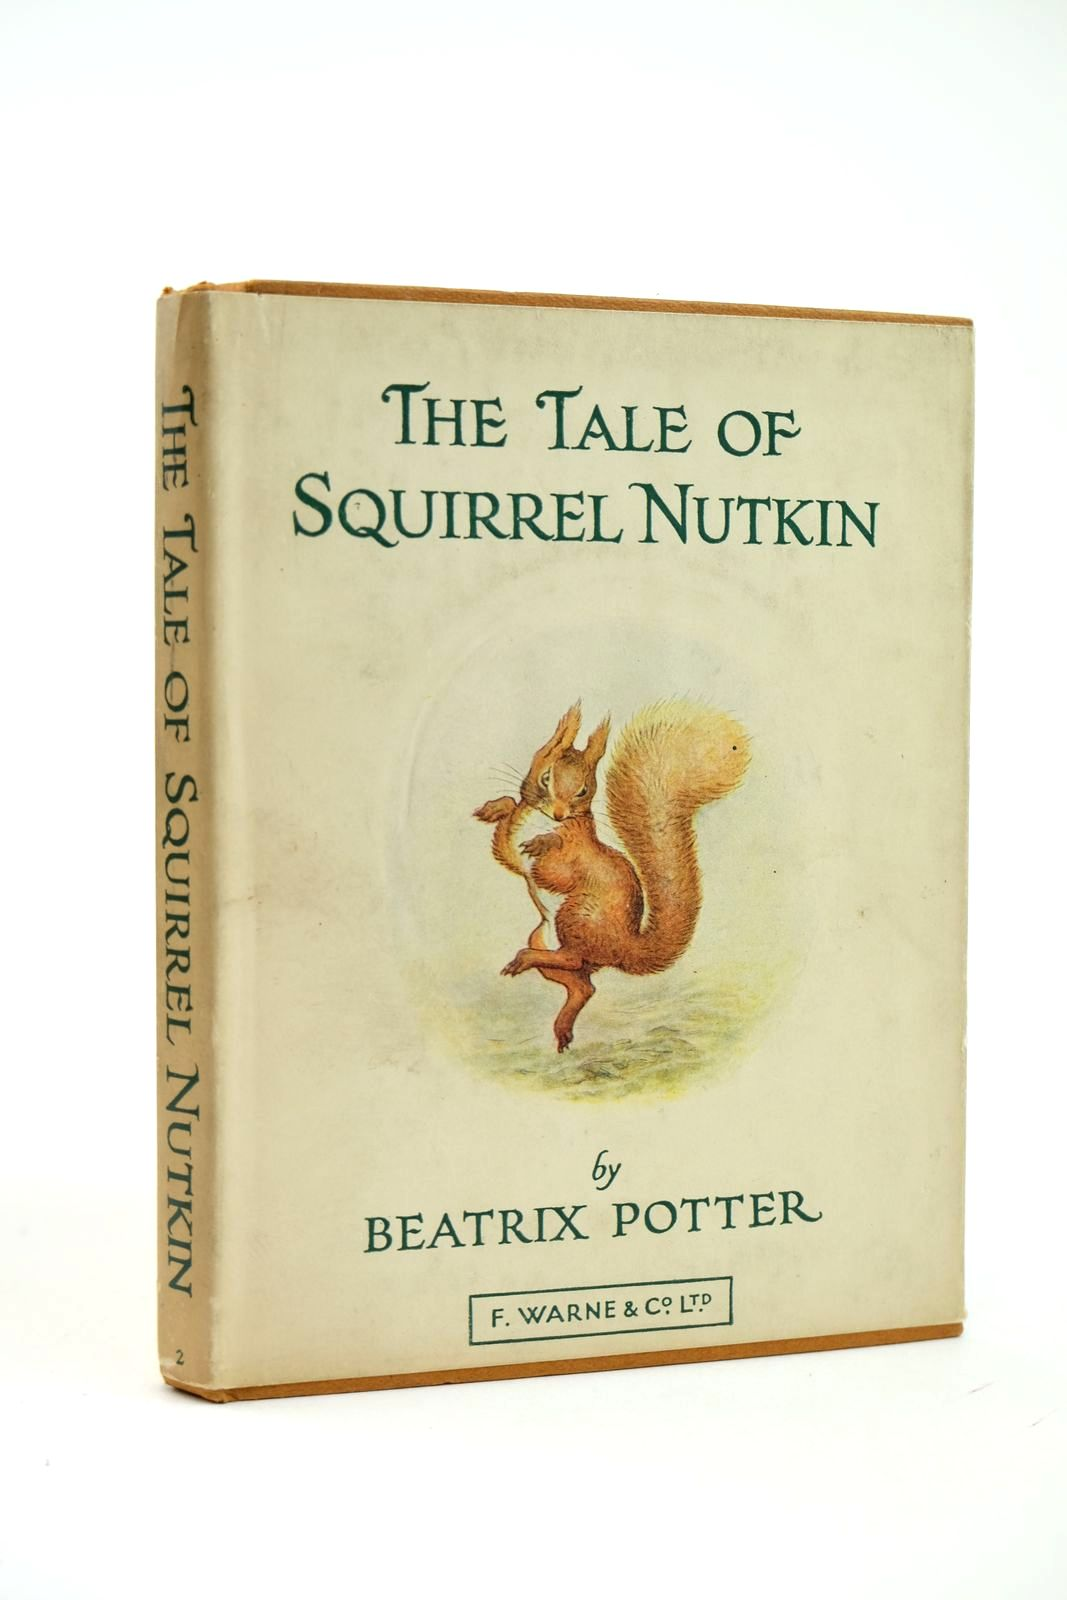 Photo of THE TALE OF SQUIRREL NUTKIN- Stock Number: 2131895